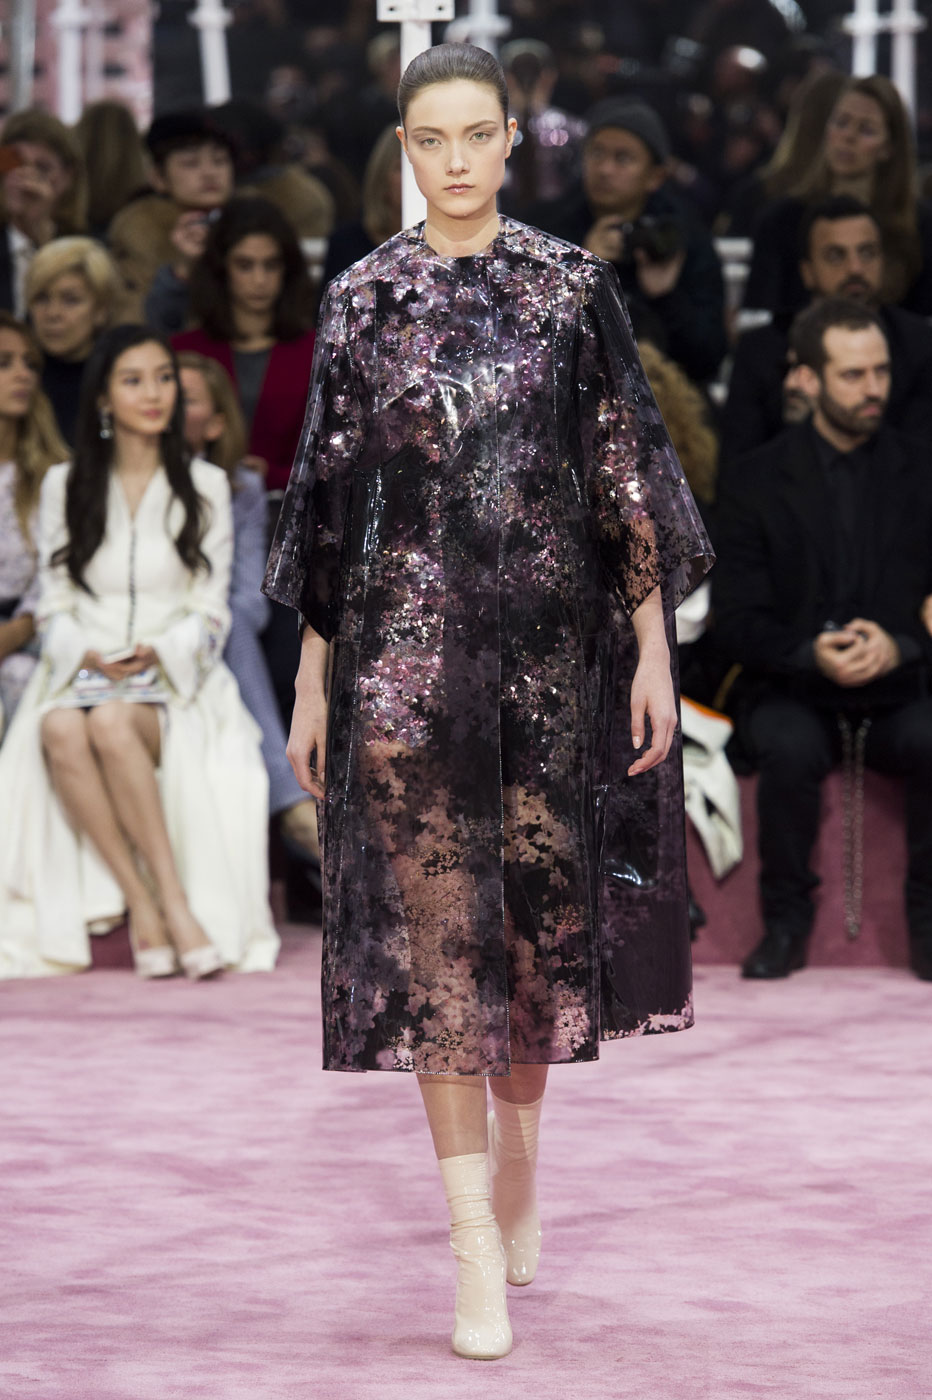 Christian-Dior-fashion-runway-show-haute-couture-paris-spring-summer-2015-the-impression-051